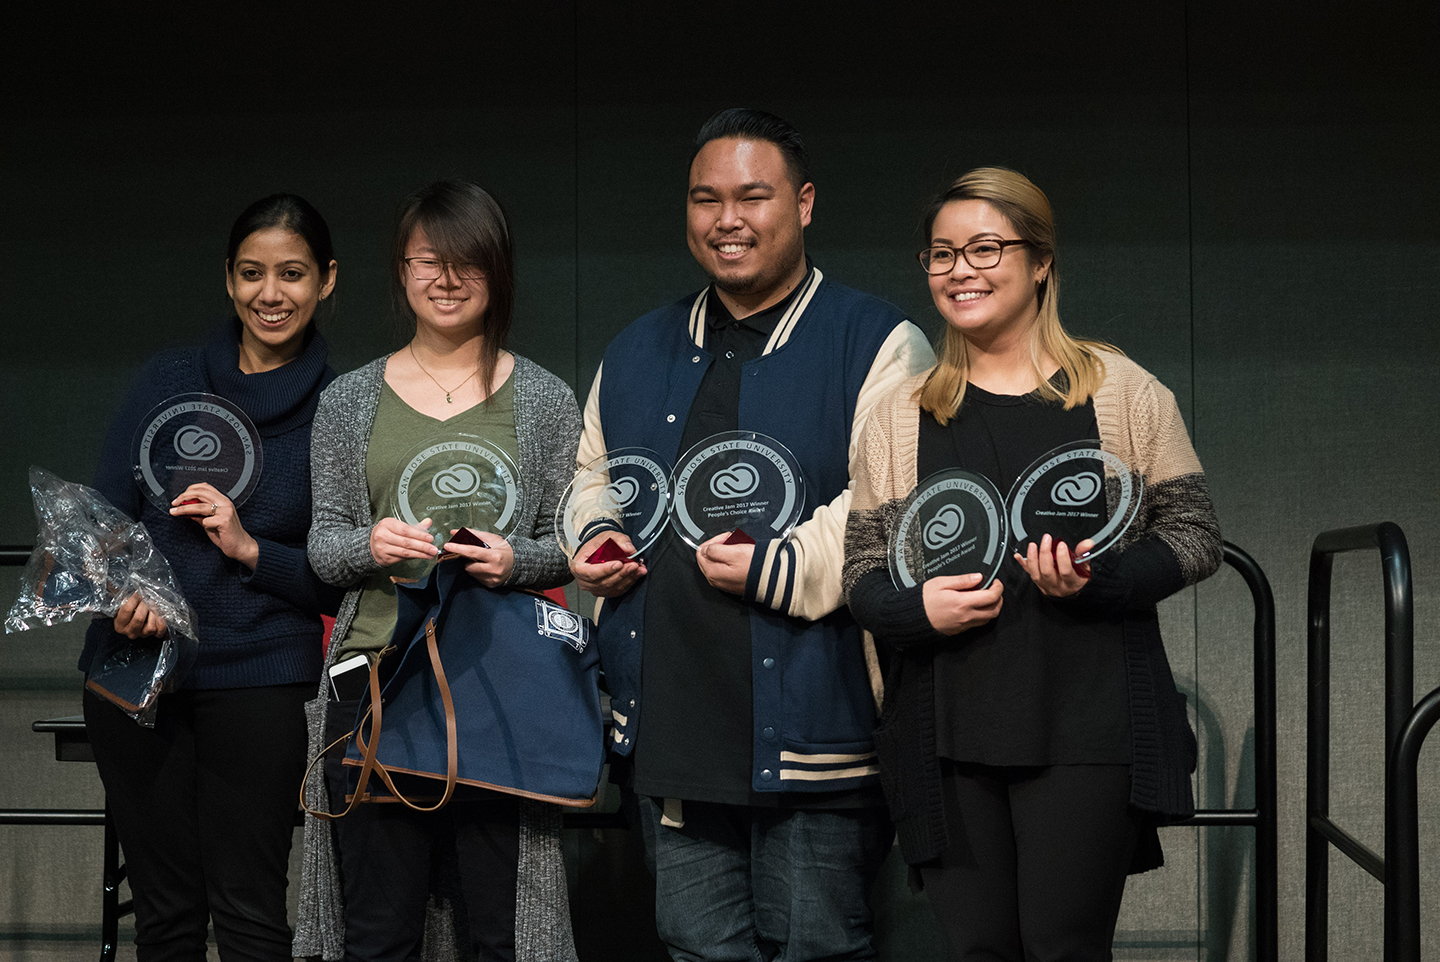 SJSU students (left to right) Vasadha Varma, Ashley Chung, Miles Vallejos and Mariella Perez were selected for best design at the Adobe CreativeJam. (Photo: James Tensuan, '15 Journalism)